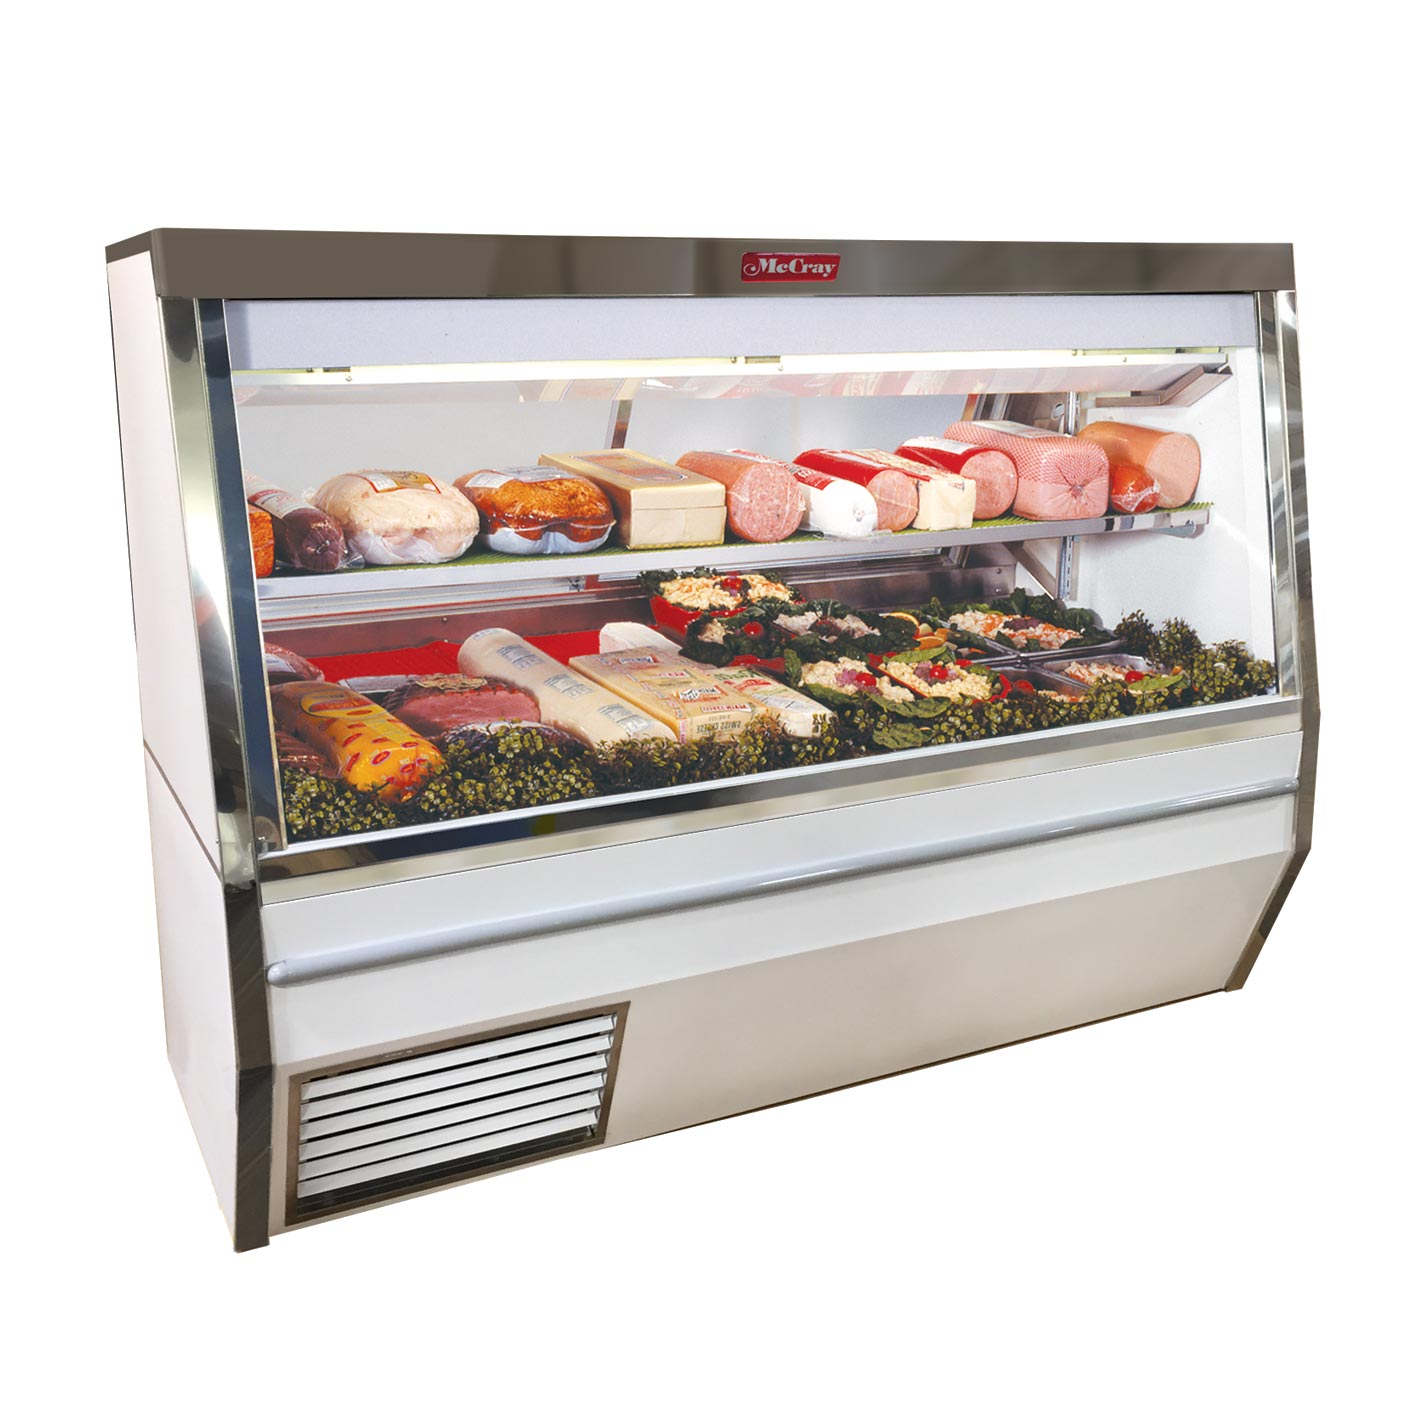 Howard-McCray SC-CDS34N-12-LED display case, refrigerated deli